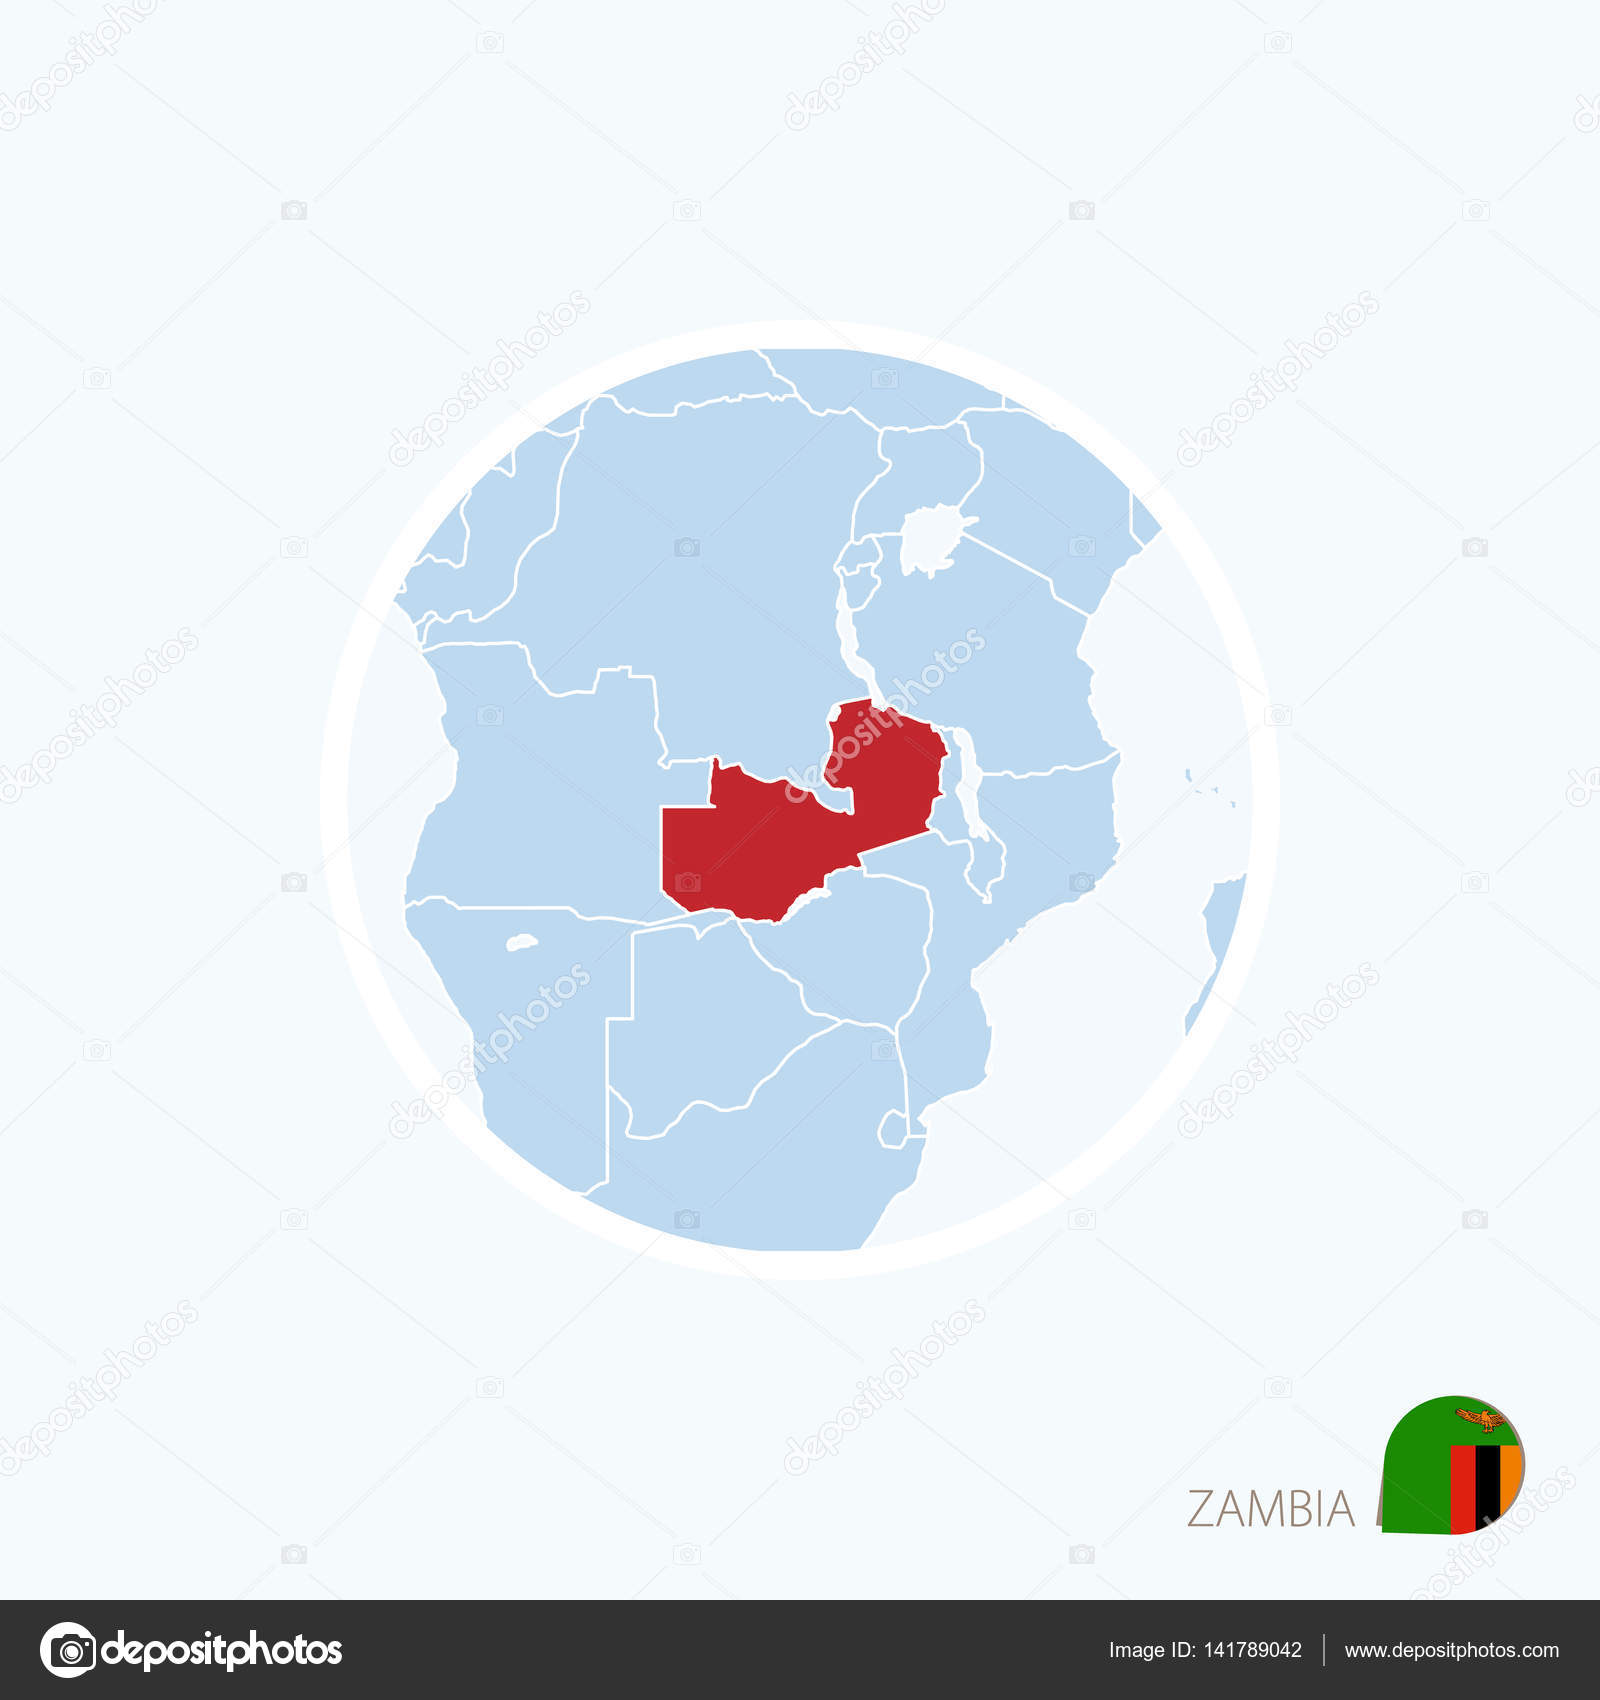 Map Of Africa Zambia.Map Icon Of Zambia Blue Map Of Africa With Highlighted Zambia